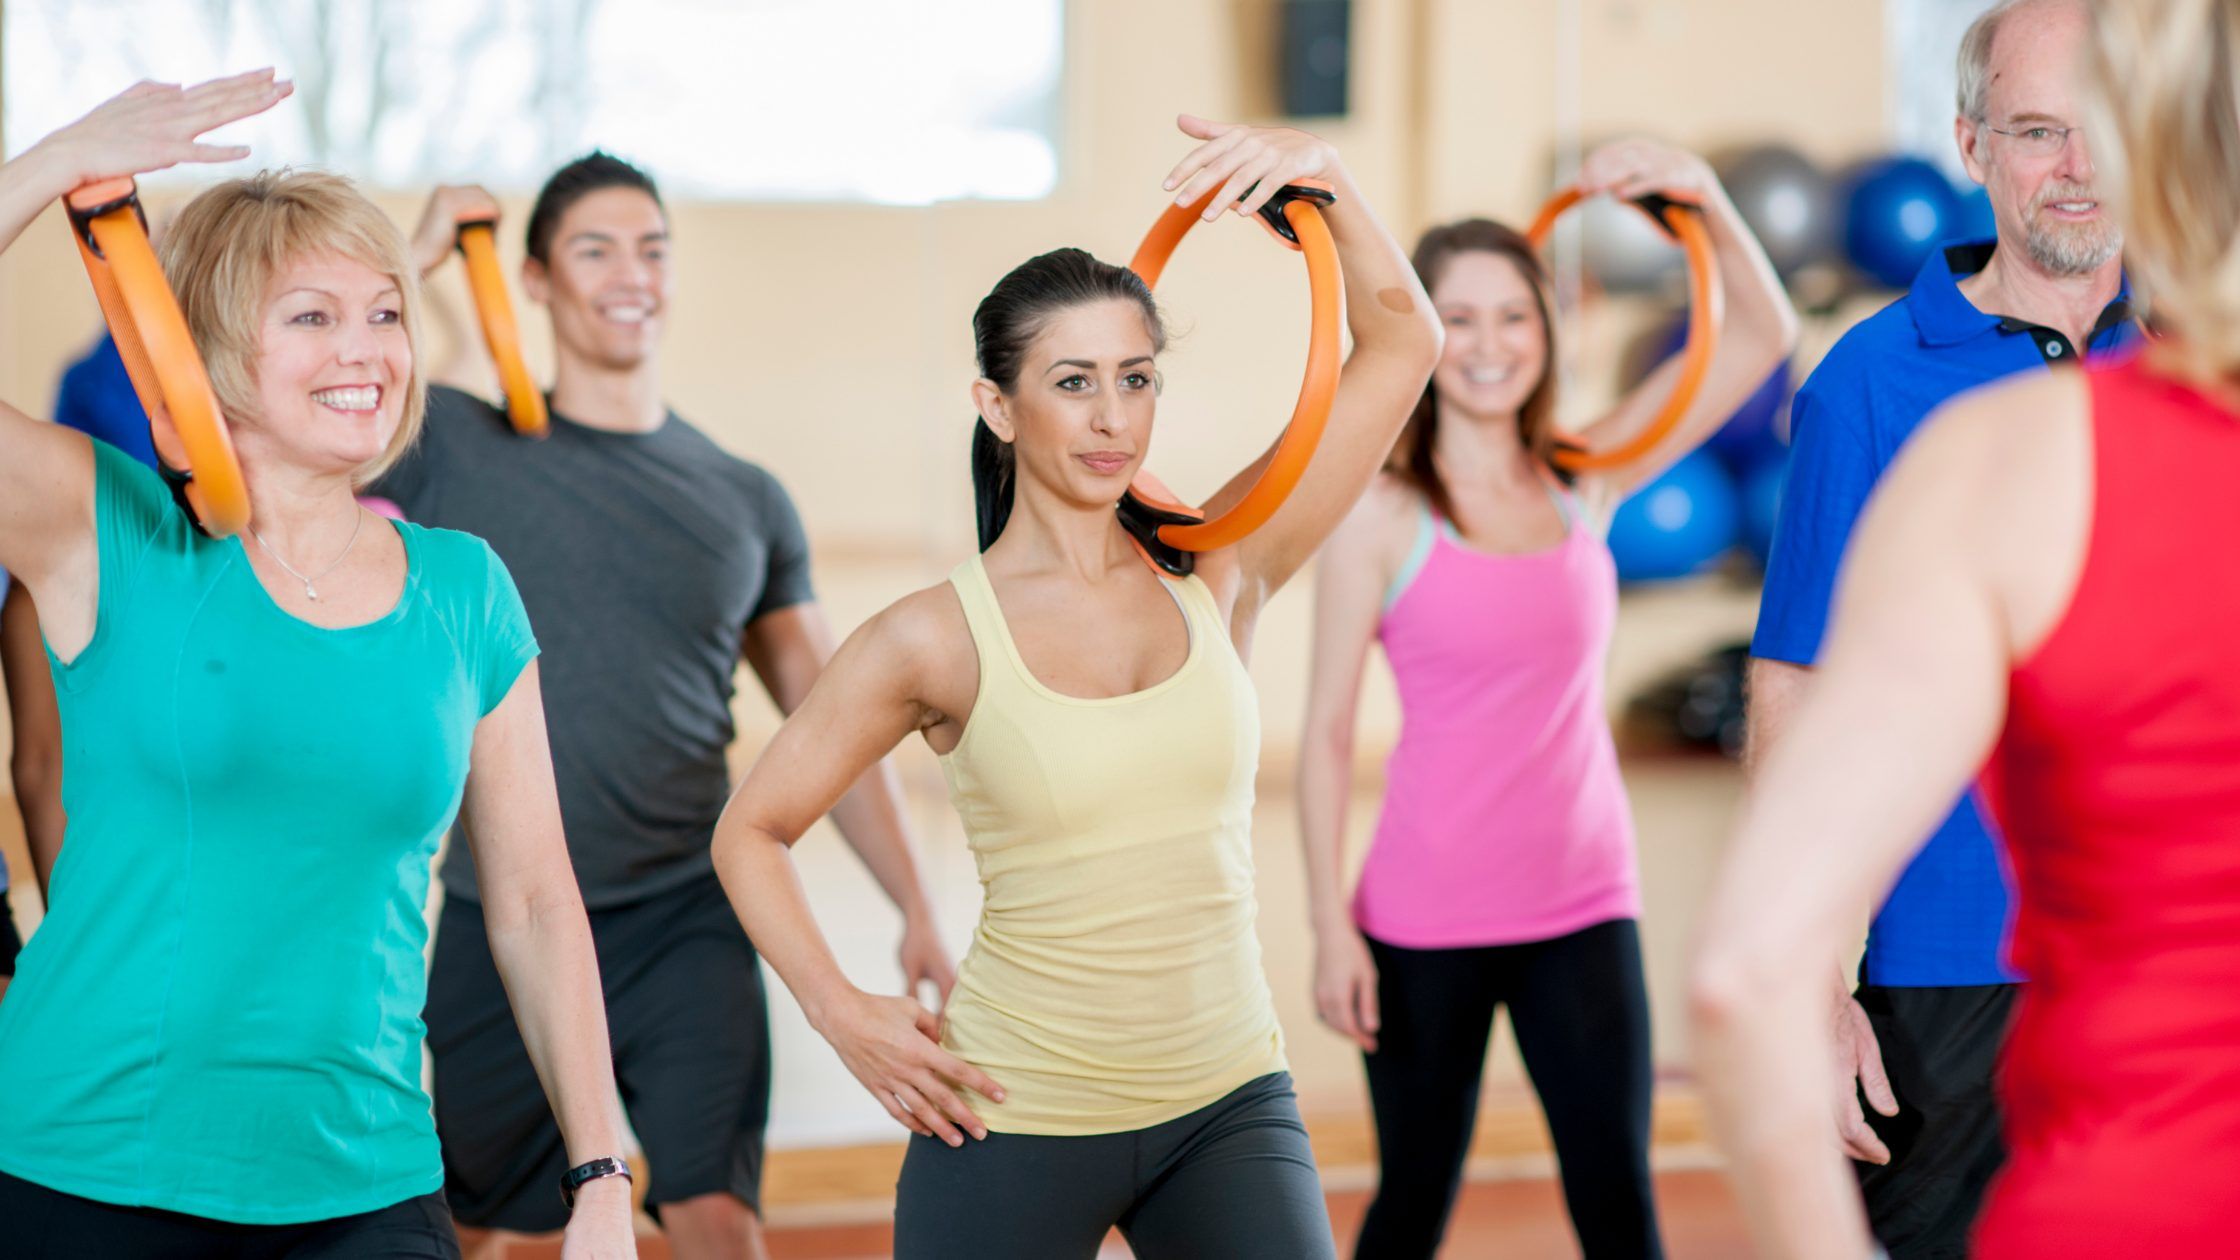 Group of people performing resistance exercise training